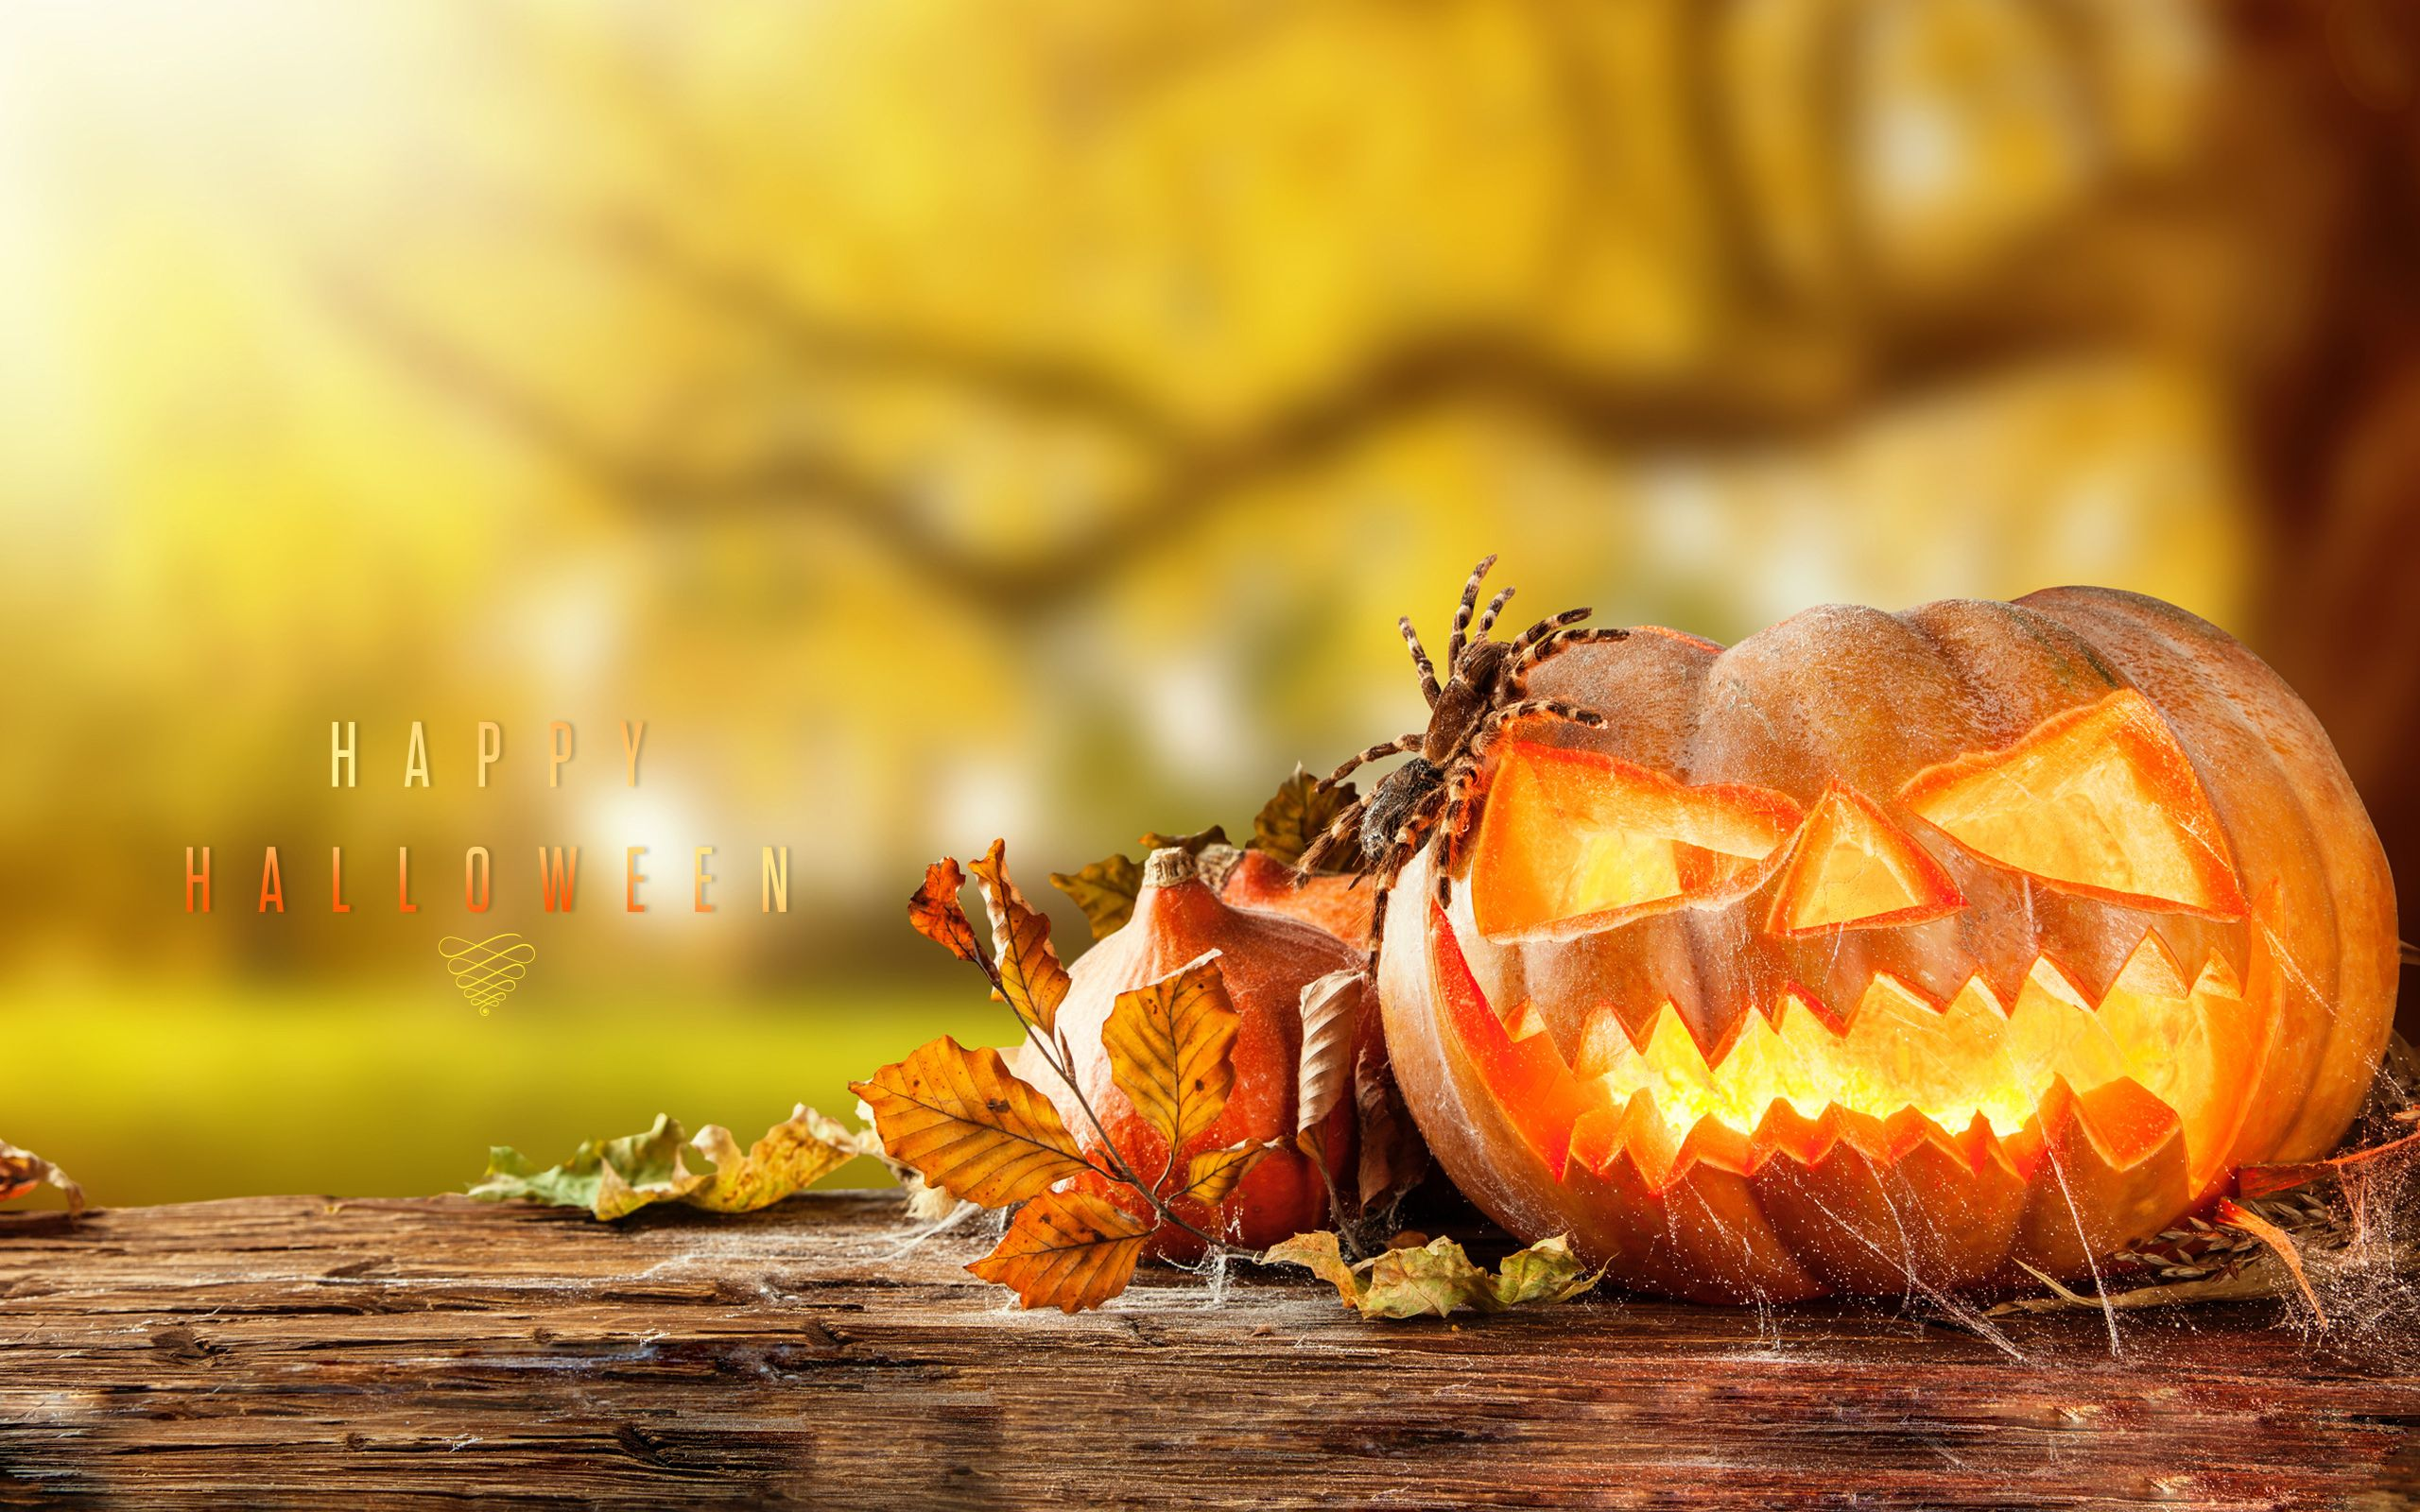 Happy Halloween HD Wallpaper In 1080p Halloween, Evening, HD, Wallpapers,  Bat,